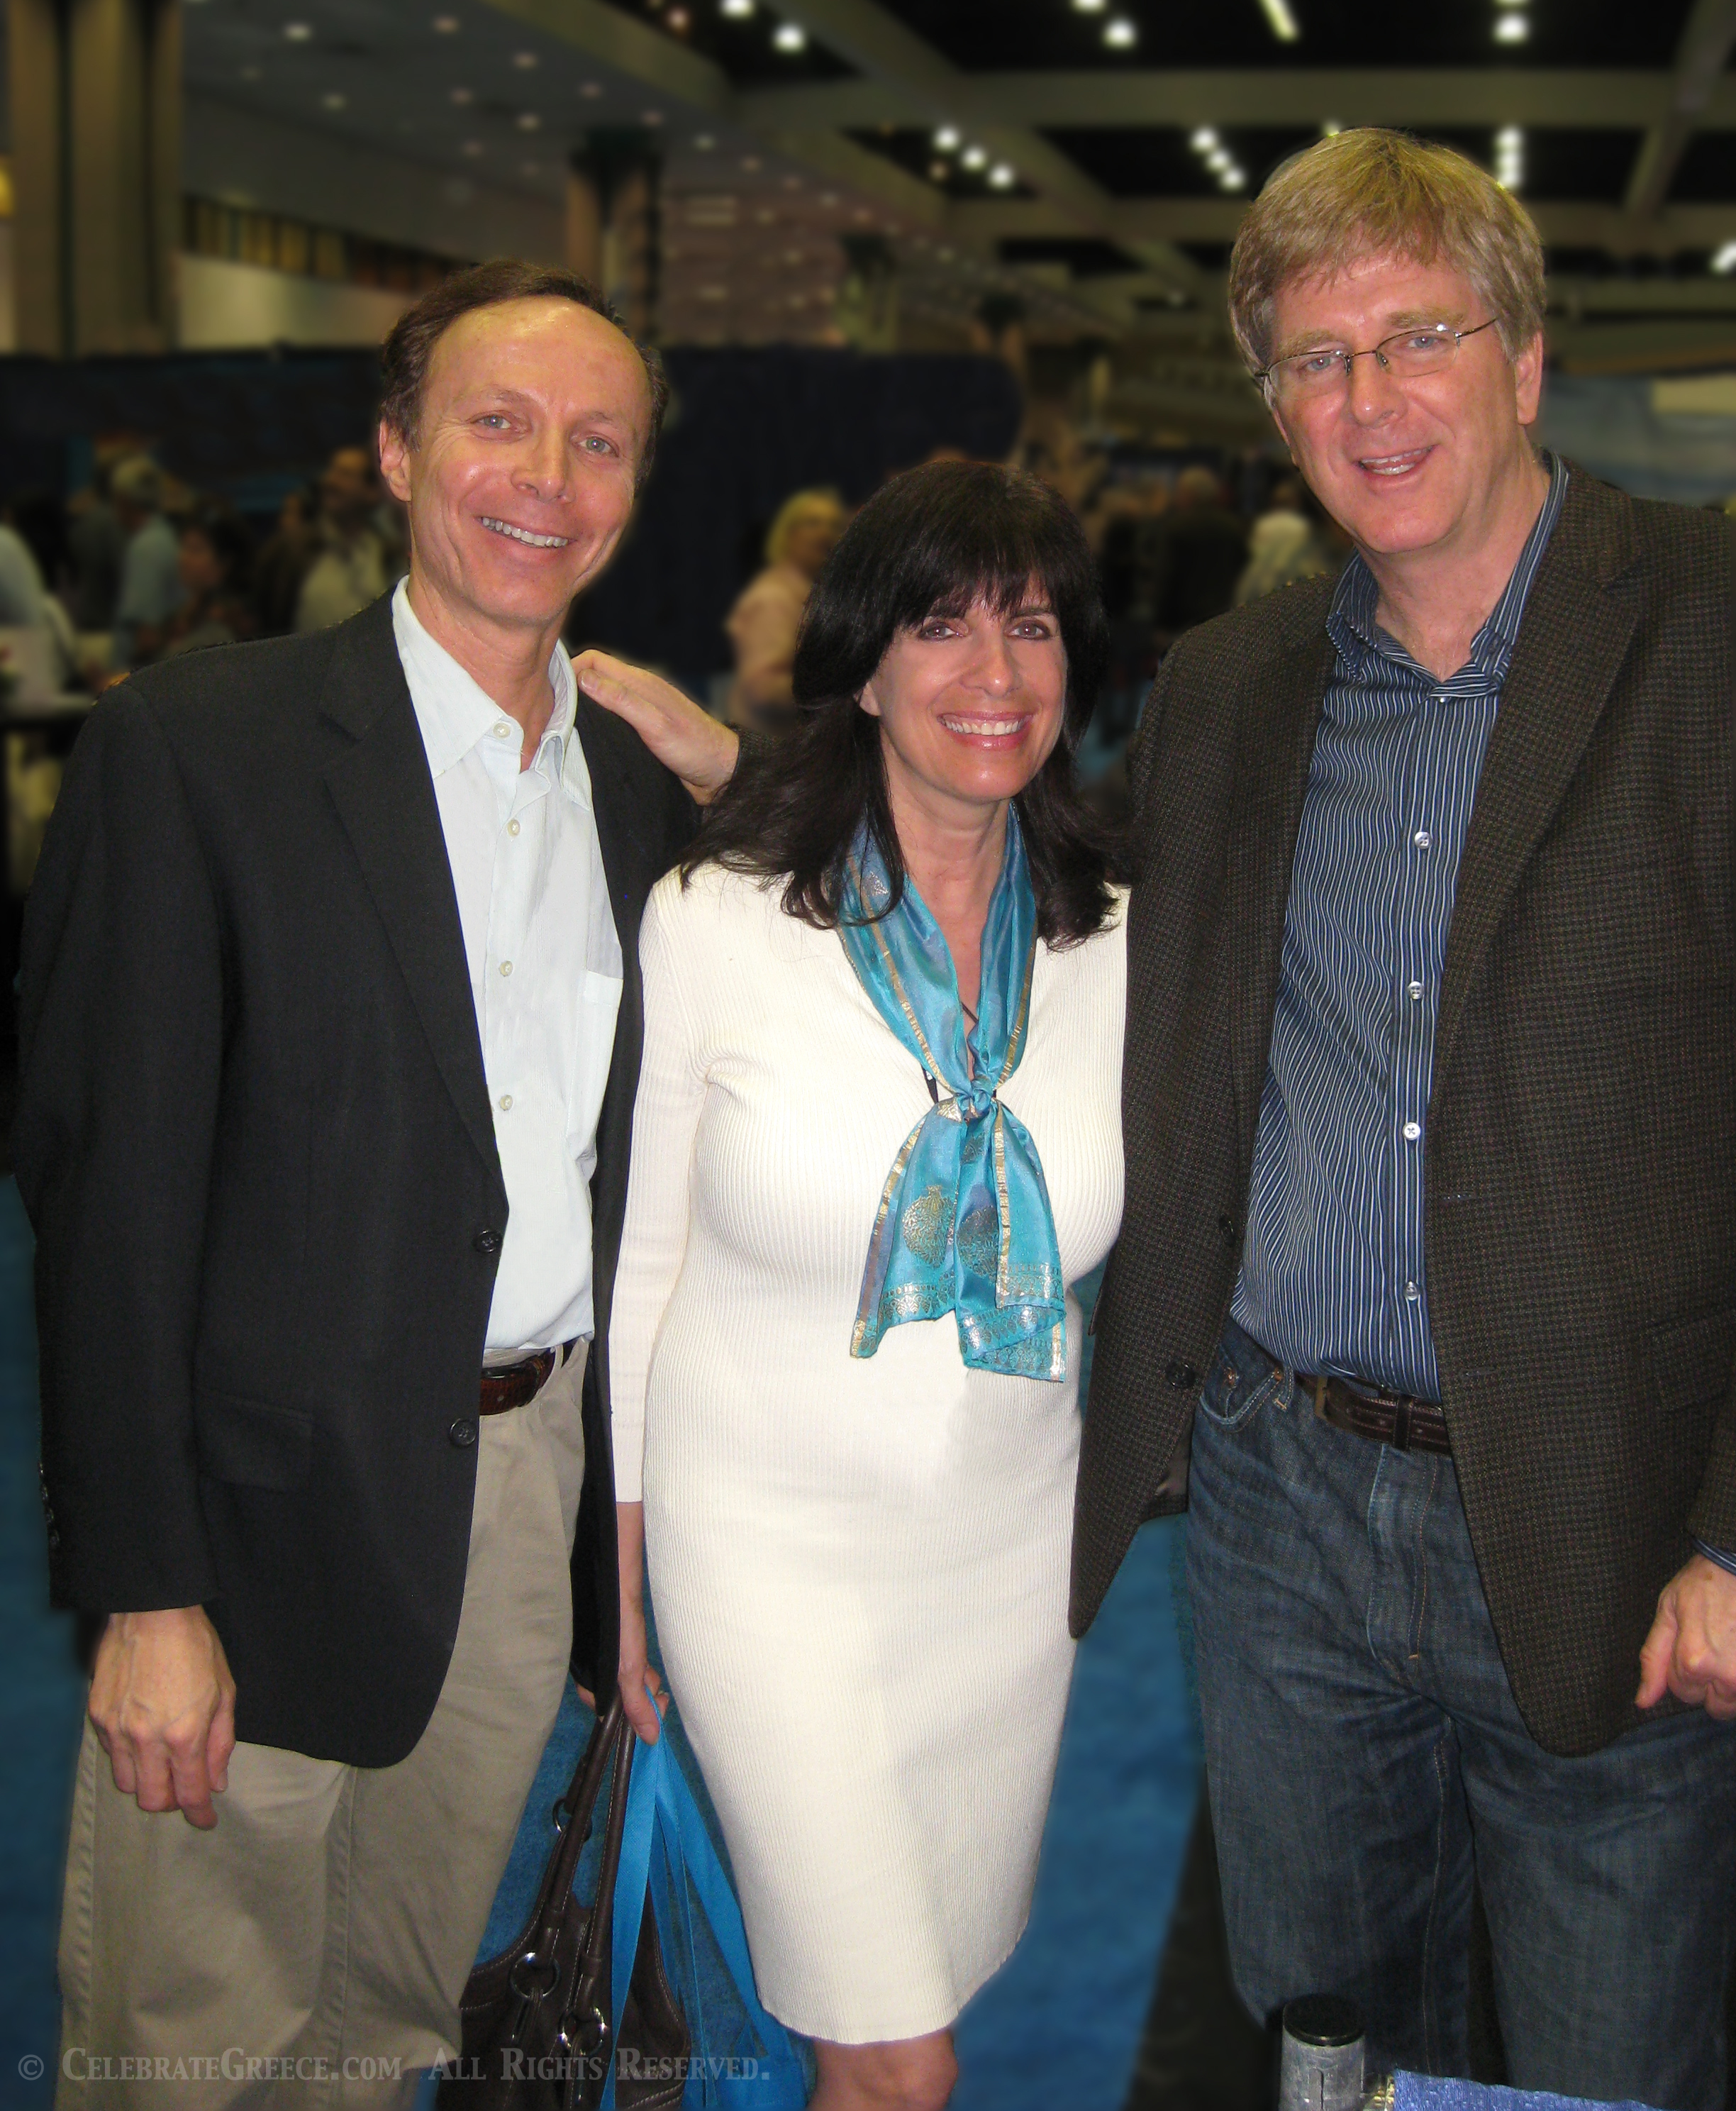 Rick Steves, Television Travel Show Host